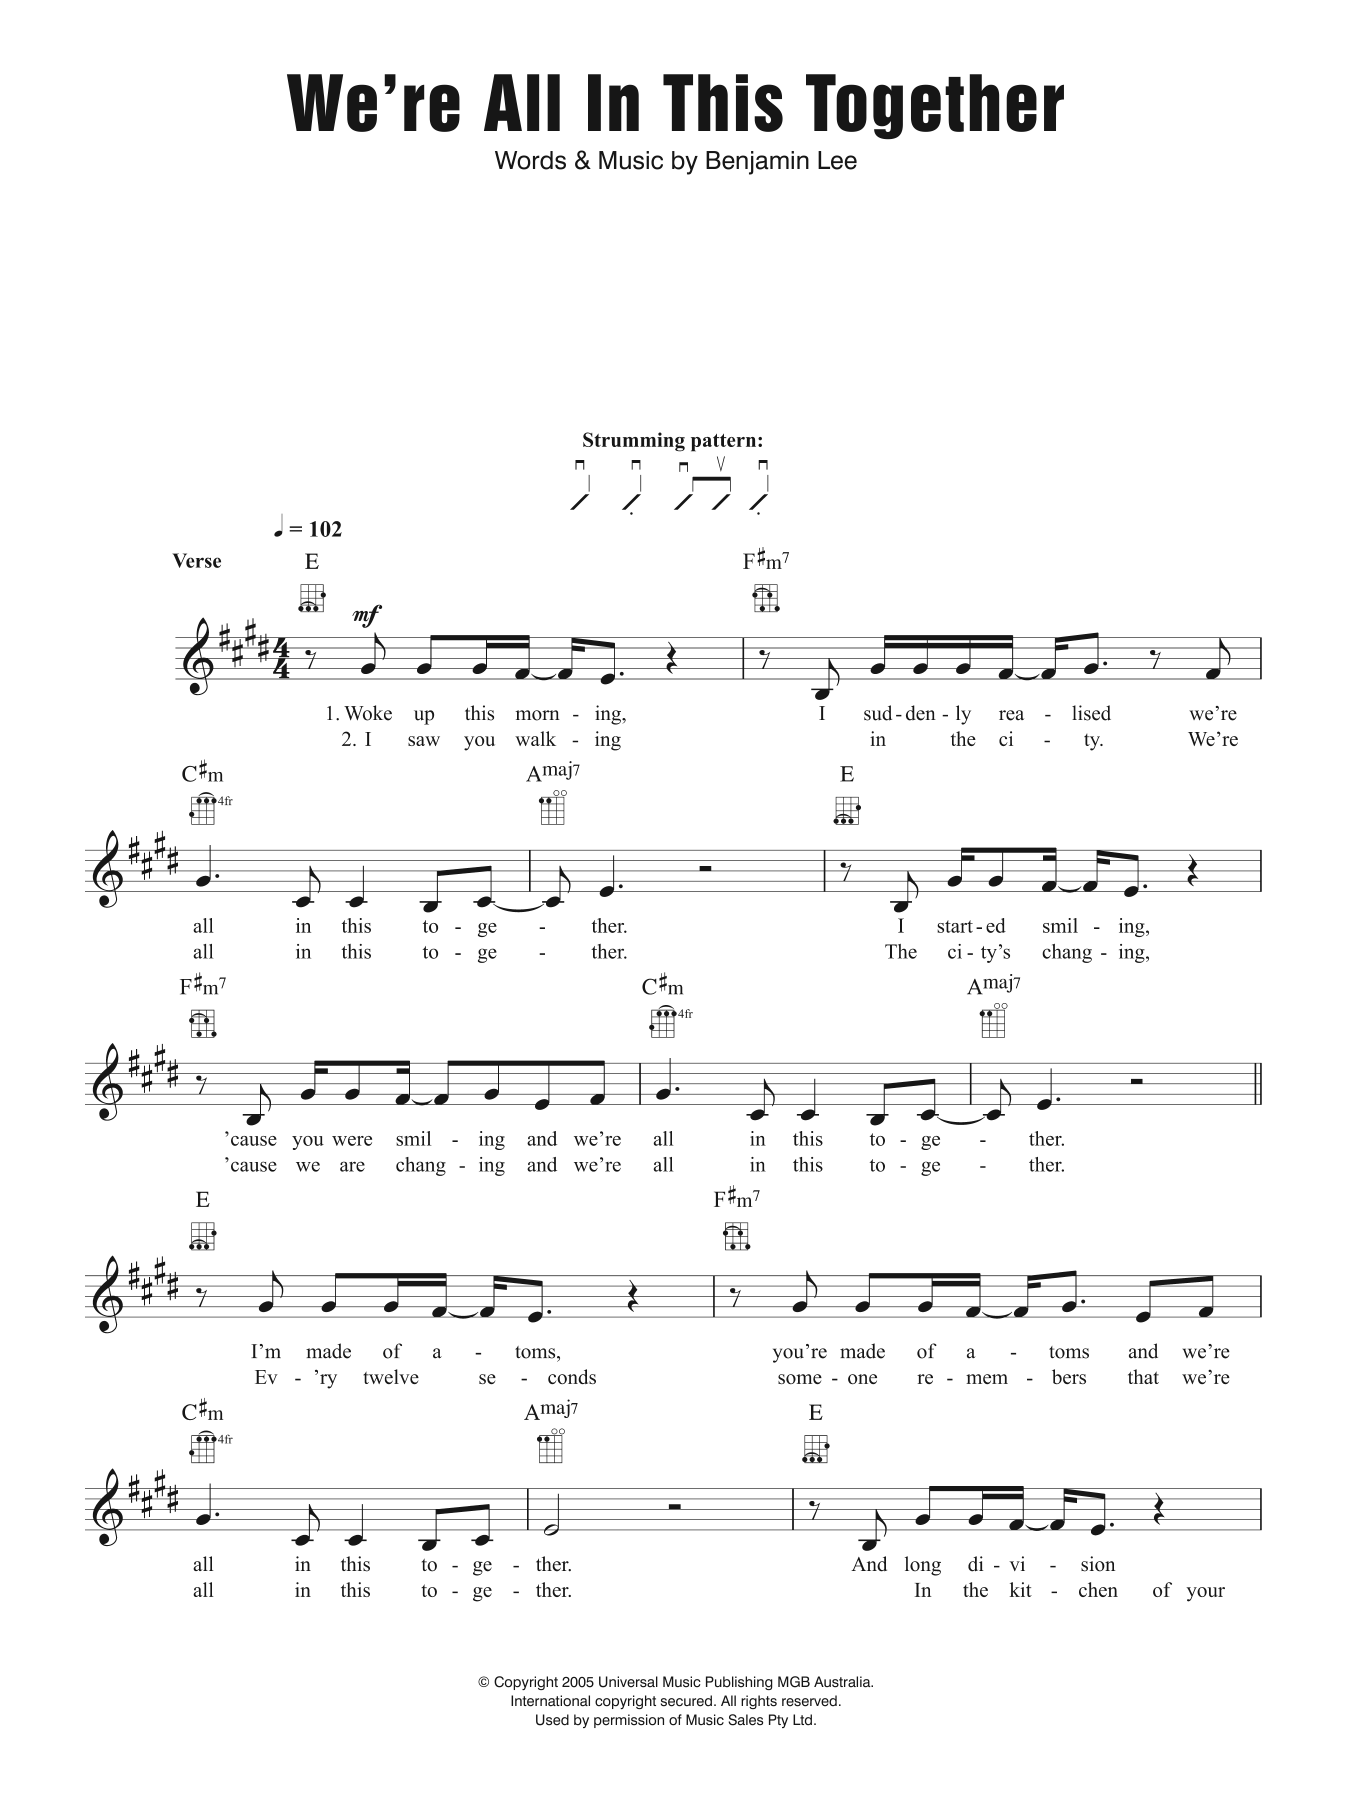 We're All In This Together Sheet Music